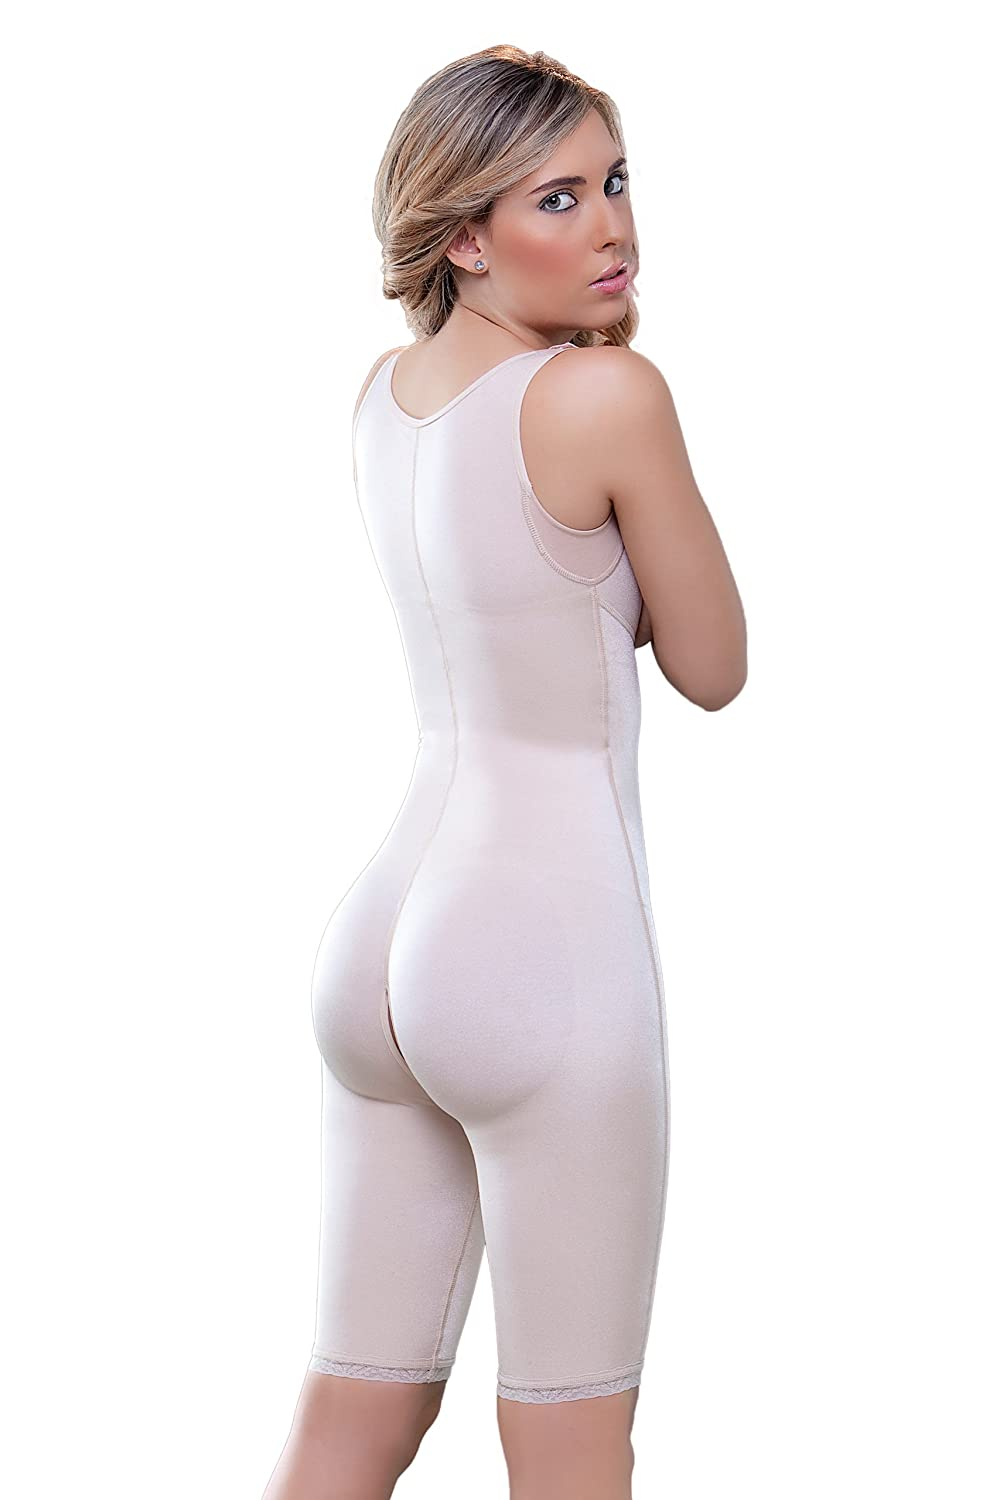 6a9f3c3b158 Vedette 938 Full Body Control Suit w/ High. at Amazon Women's Clothing store :